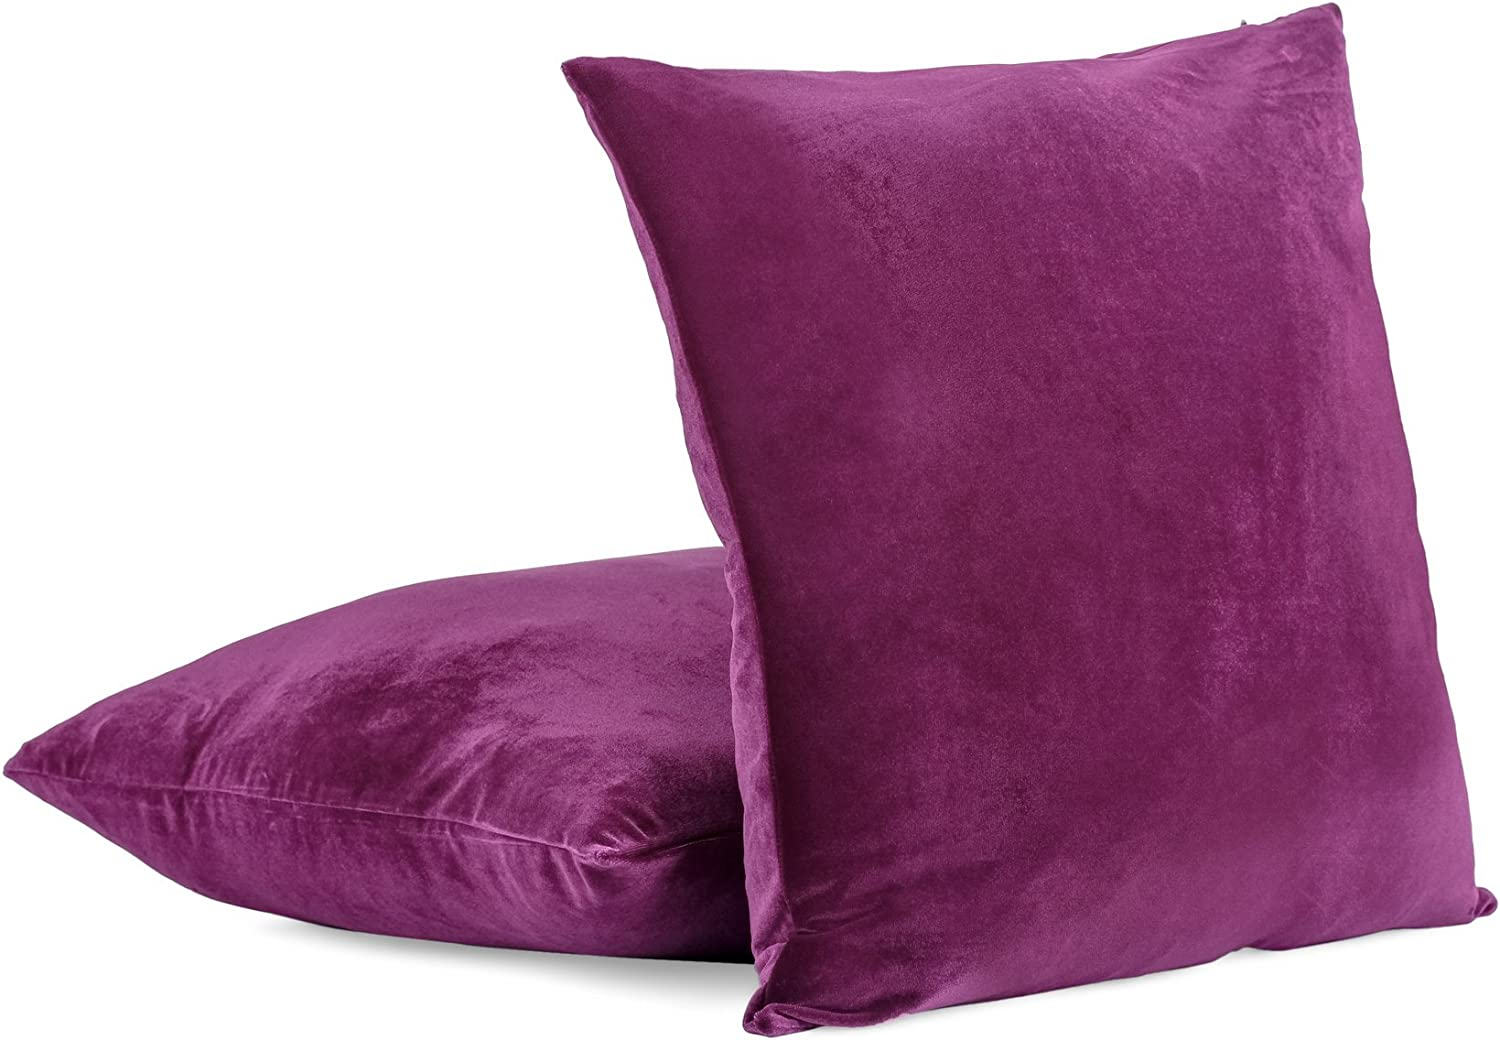 Amazon Com Super Soft Velvet Decorative Euro Pillow Cover With Zipper 26 X 26 Purple Set Of 2 Home Kitchen